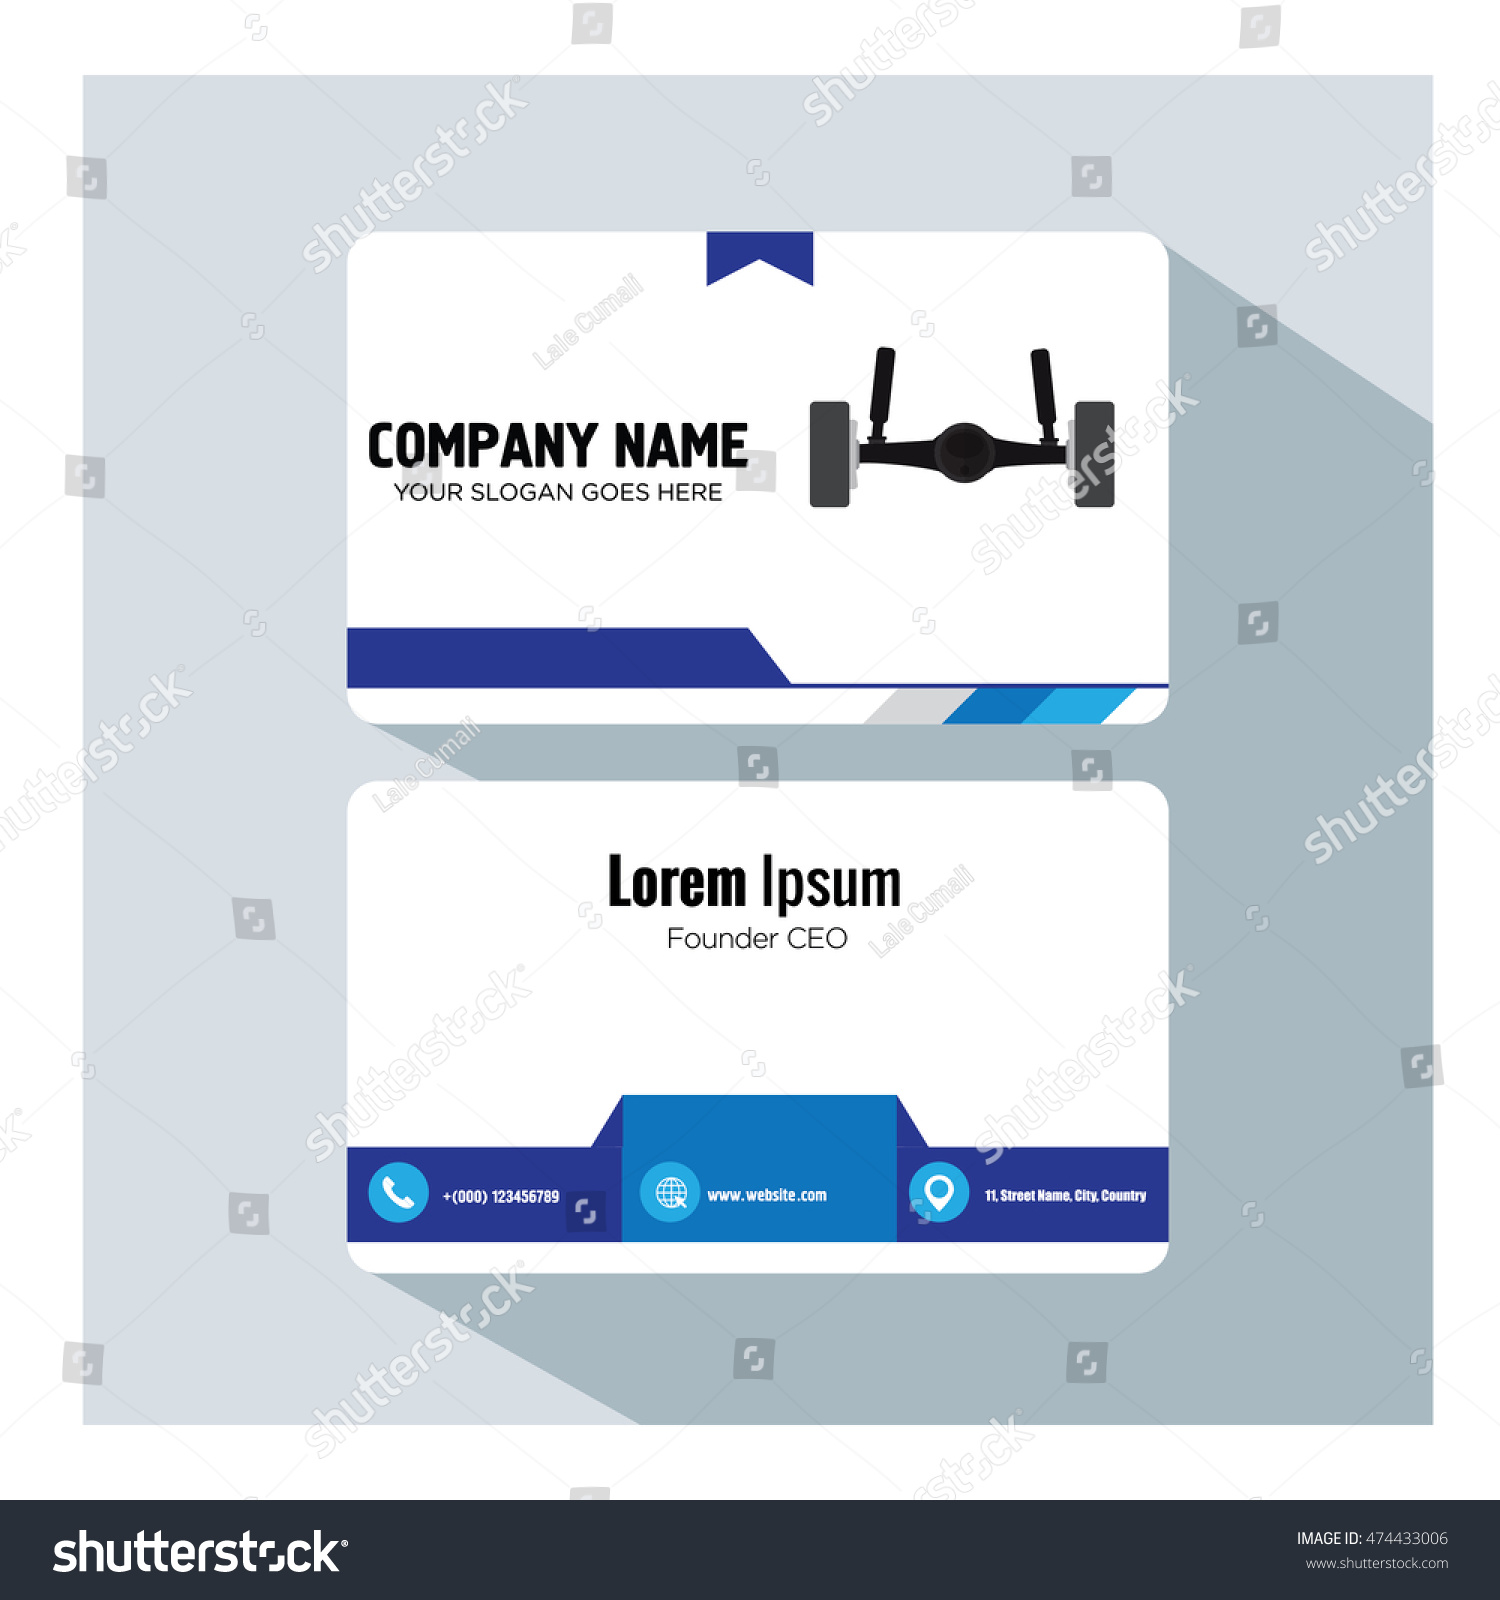 Businesscards mx register code images card design and card template businesscards mx register code image collections card design and business card mx serial number choice image reheart Images